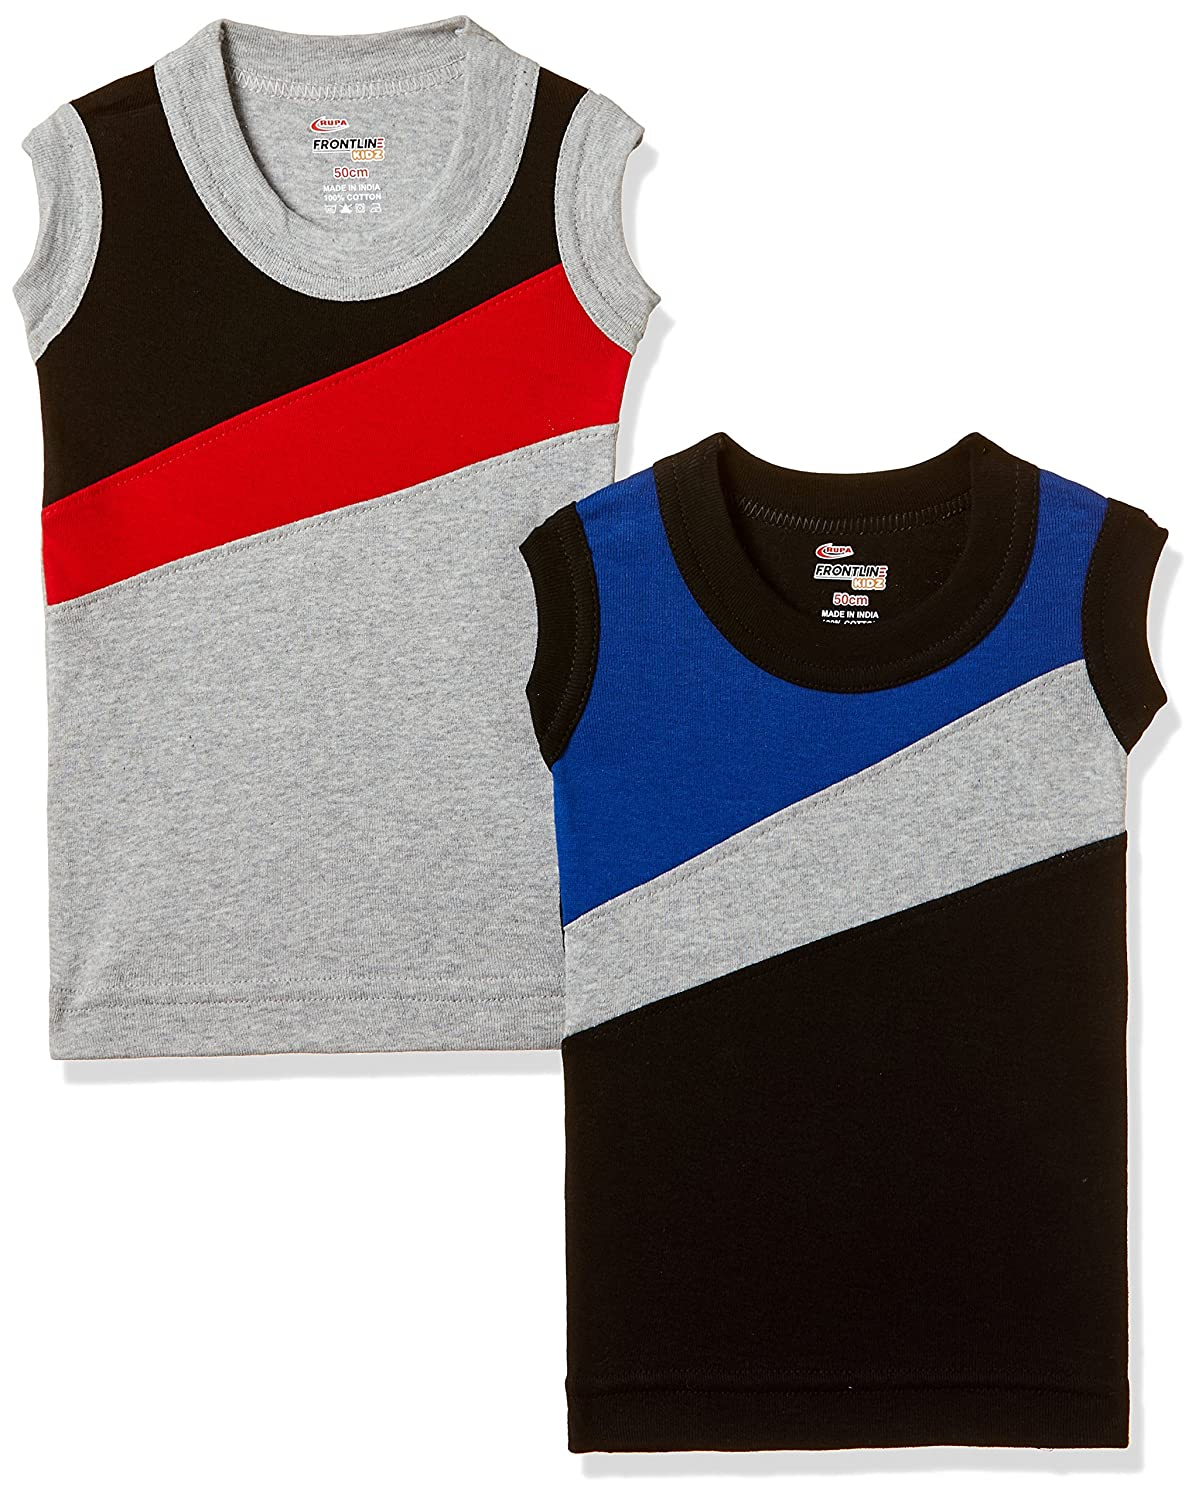 [Apply Coupon] Rupa Frontline Kids Boys' Cotton Vest (Pack of 2)(Colors & Print May Vary)